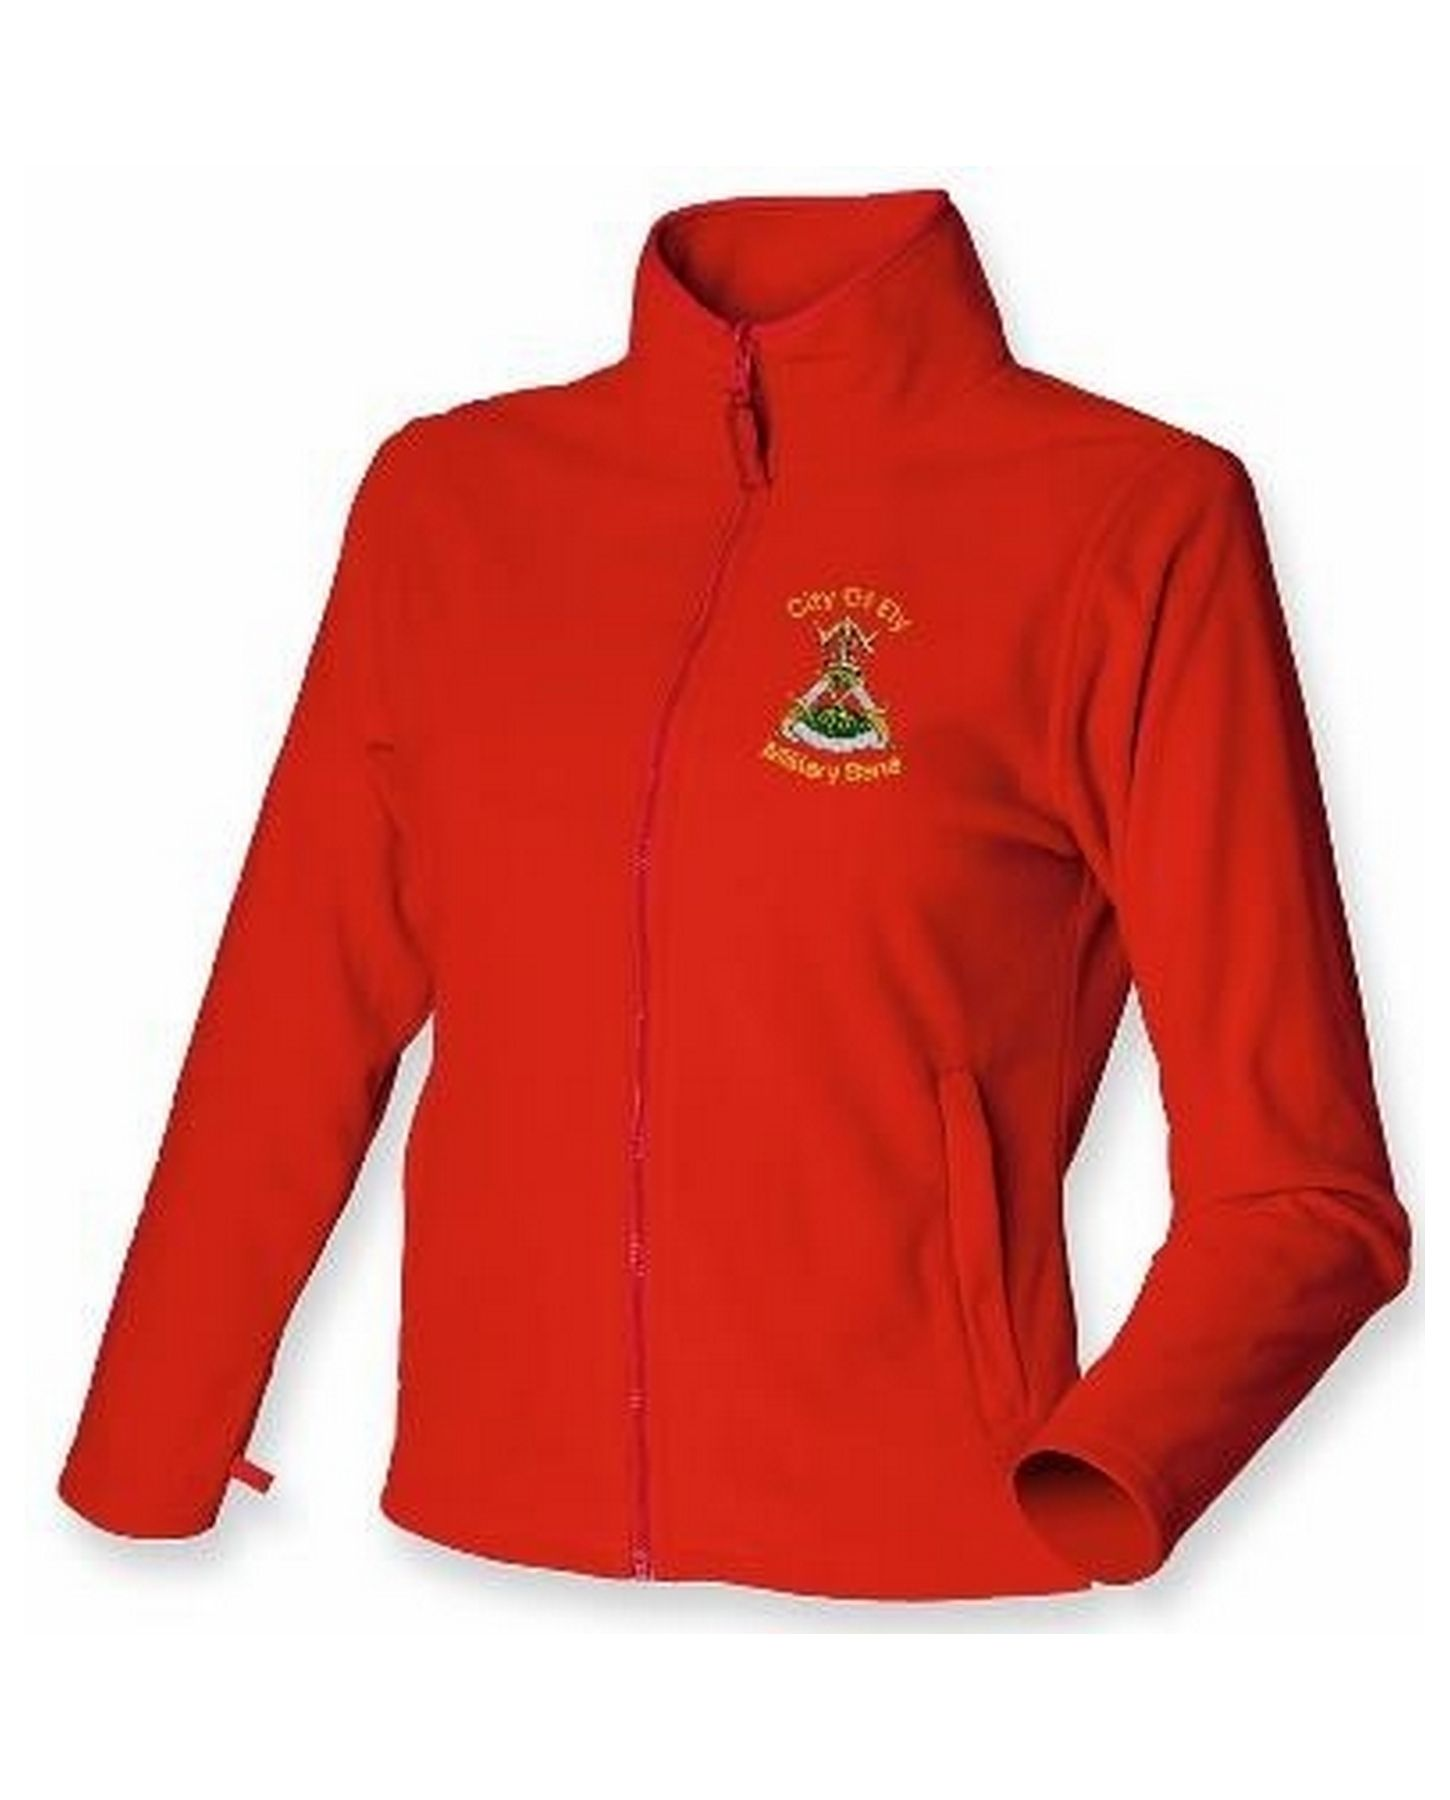 Ely Military Band – Henbury Fleece Lady Fit